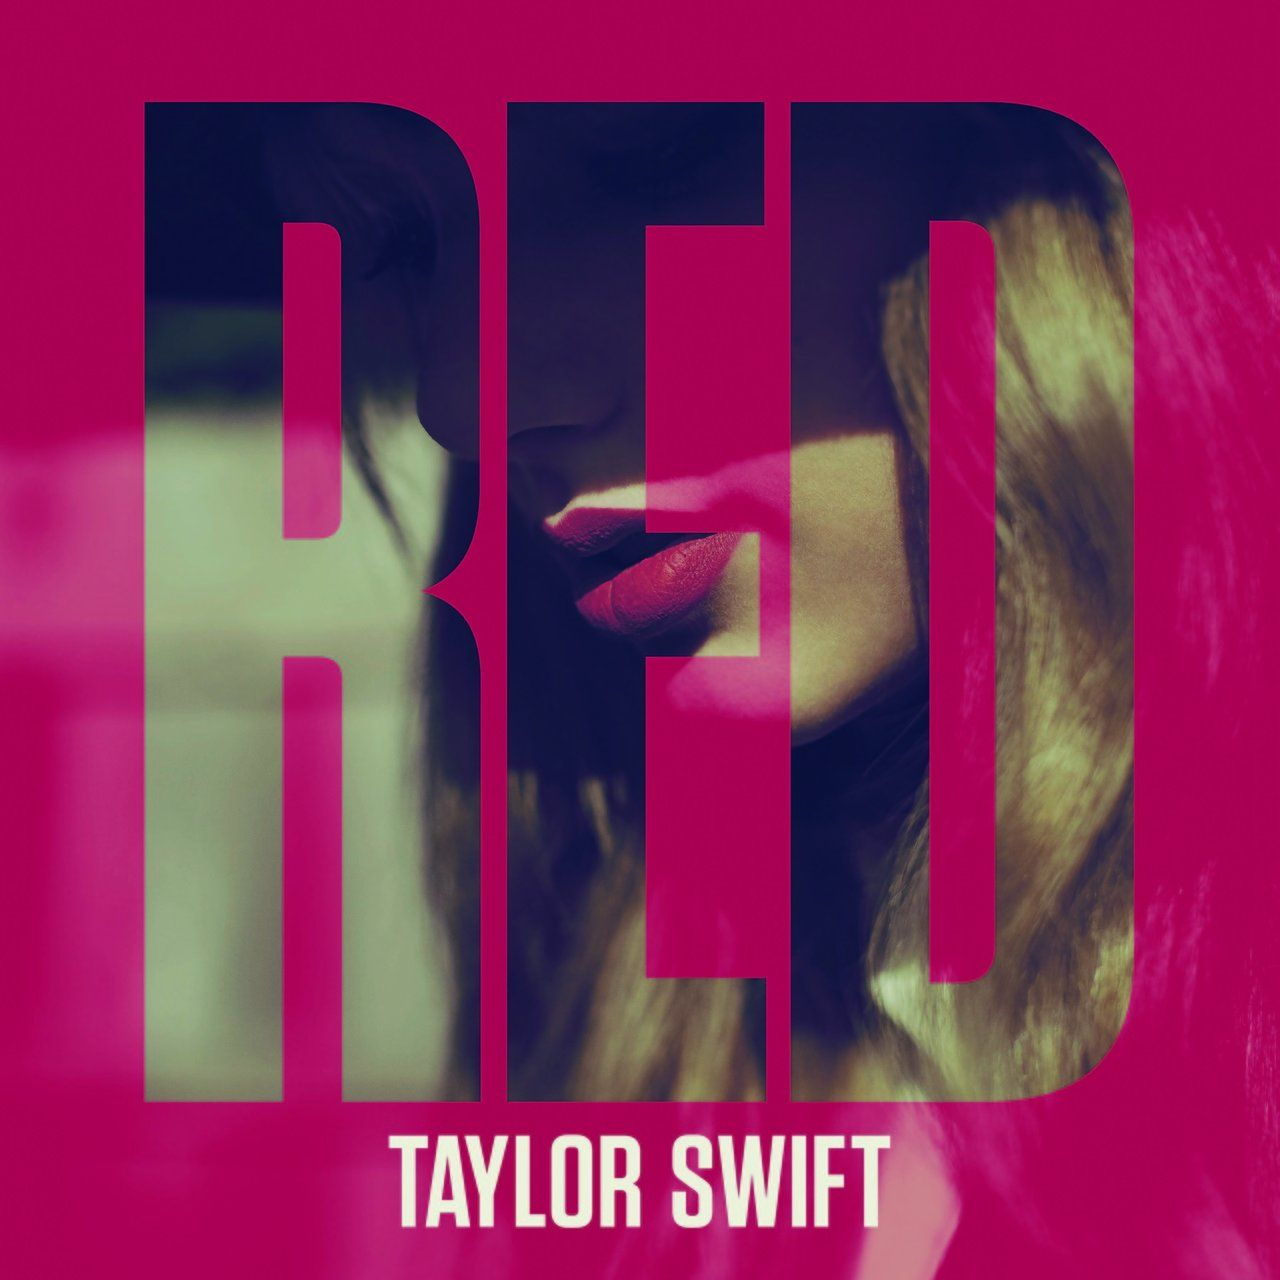 Taylor Swift - Red (Deluxe Edition) - Album Cover